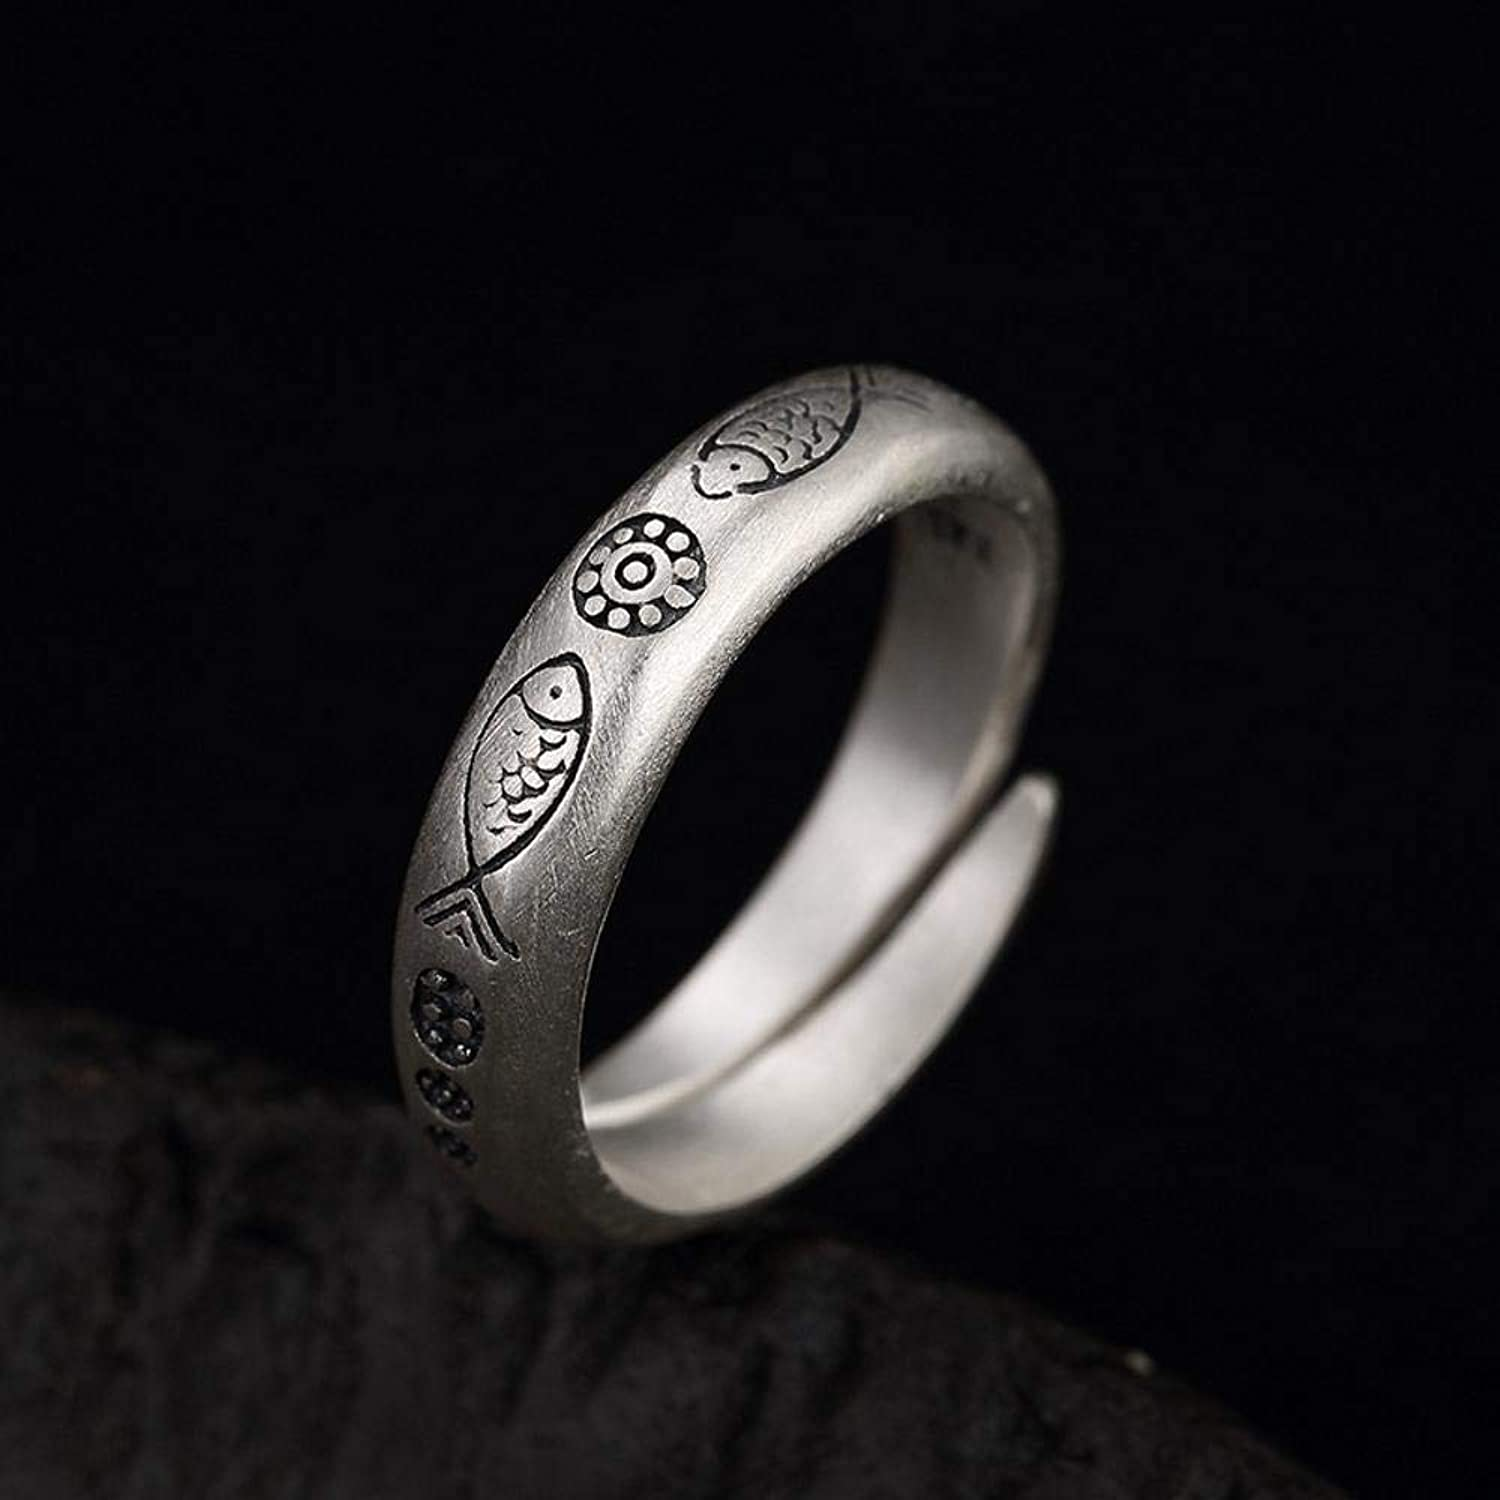 DTZH Rings Jewellery RingS990 Sterling Silver Retro matt Embossed Small Fish Flower Ring Give it to Dear People